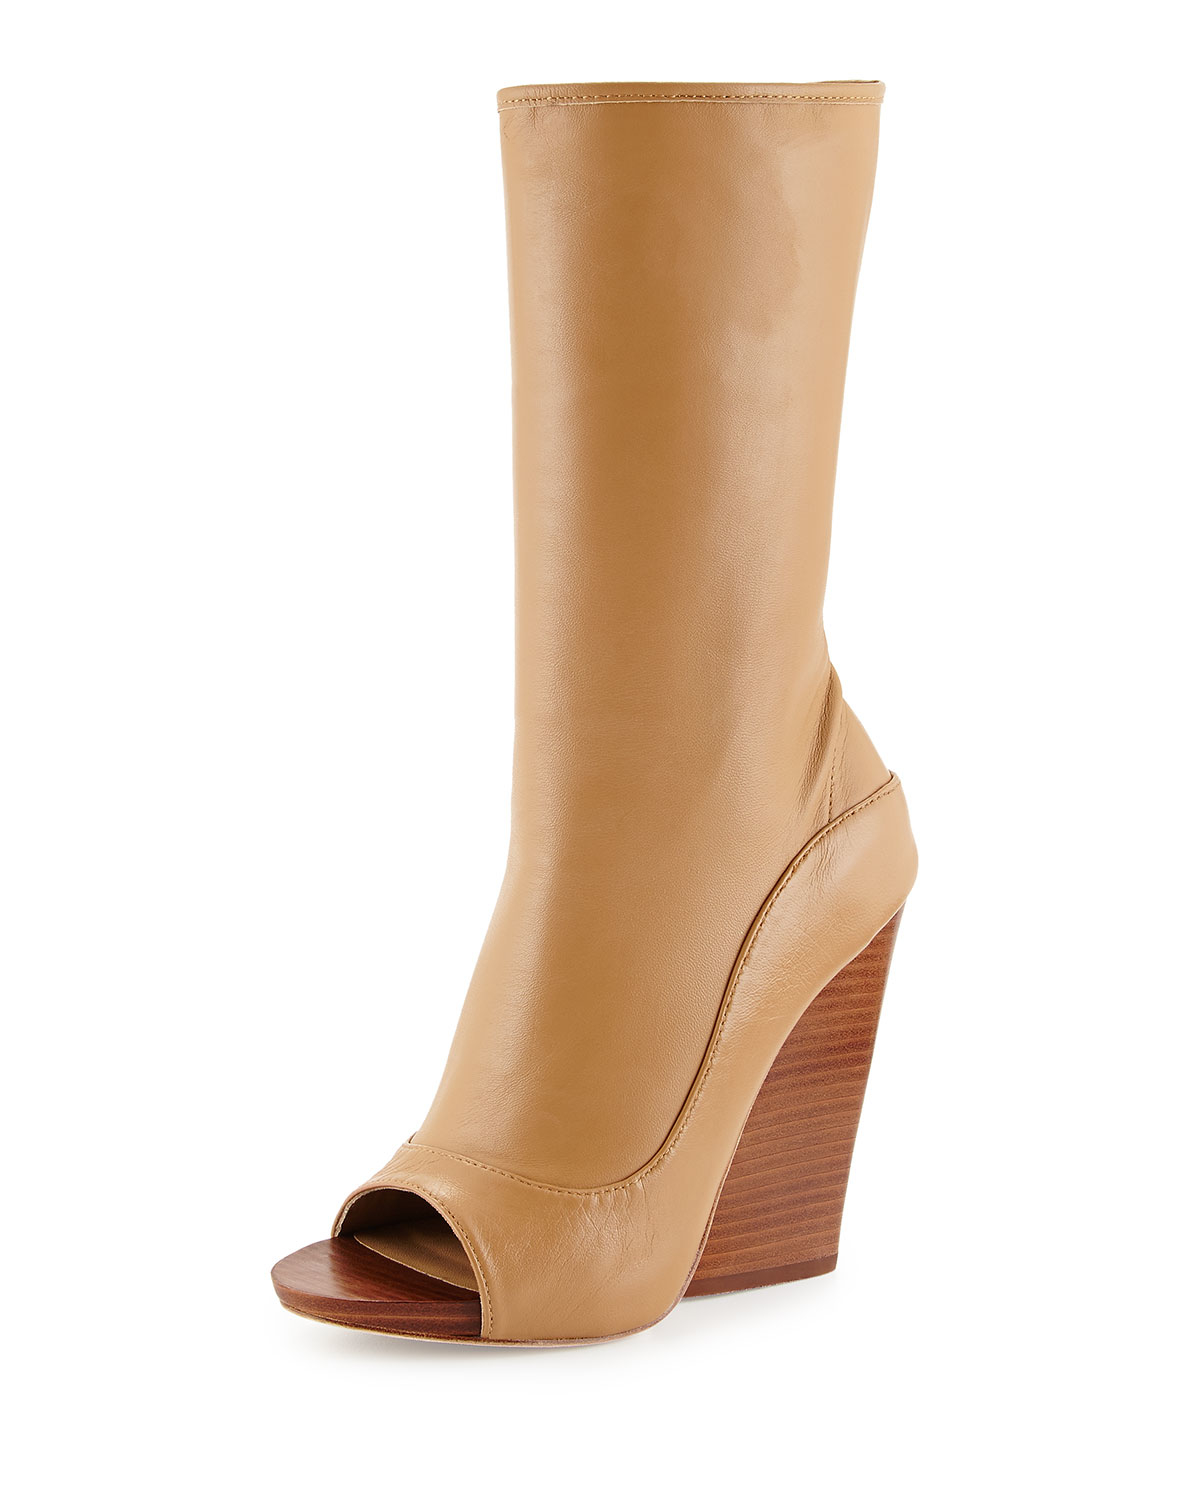 sports shoes 592af 66b66 Leon Max Ellis Peep-toe Wedge Bootie in Natural - Lyst